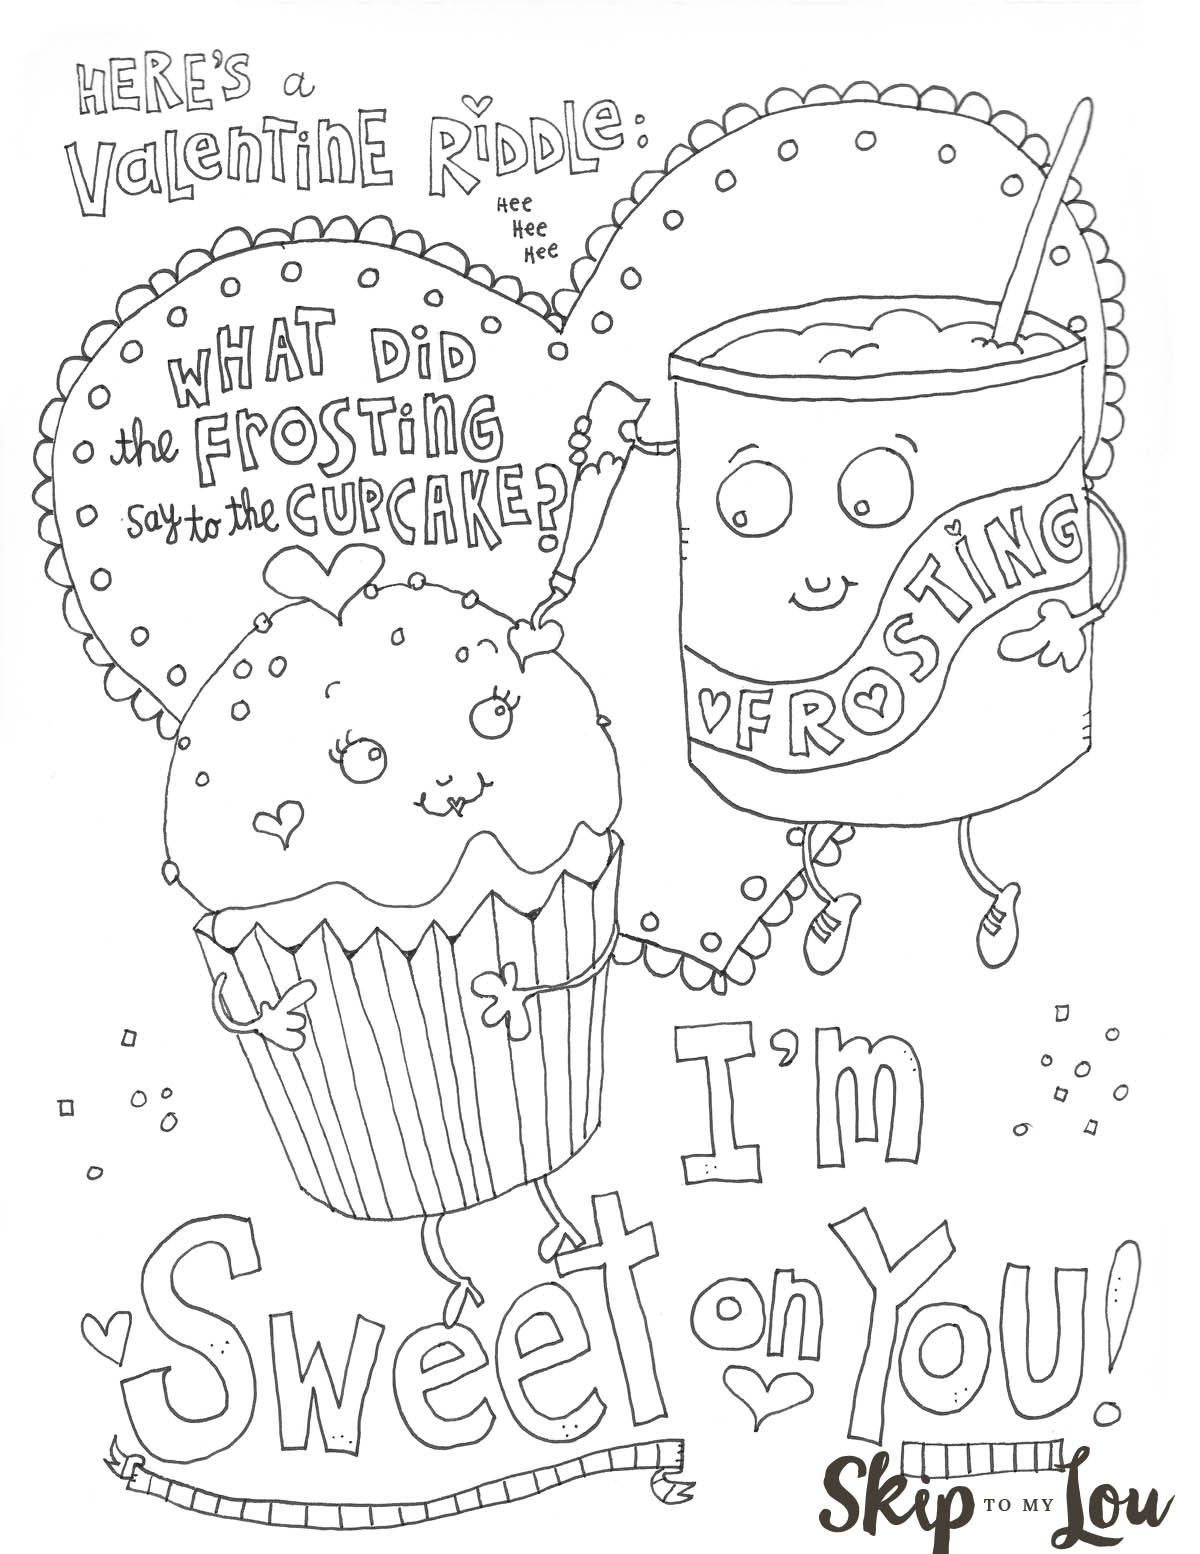 Sweet on you Valentine Coloring Sheet